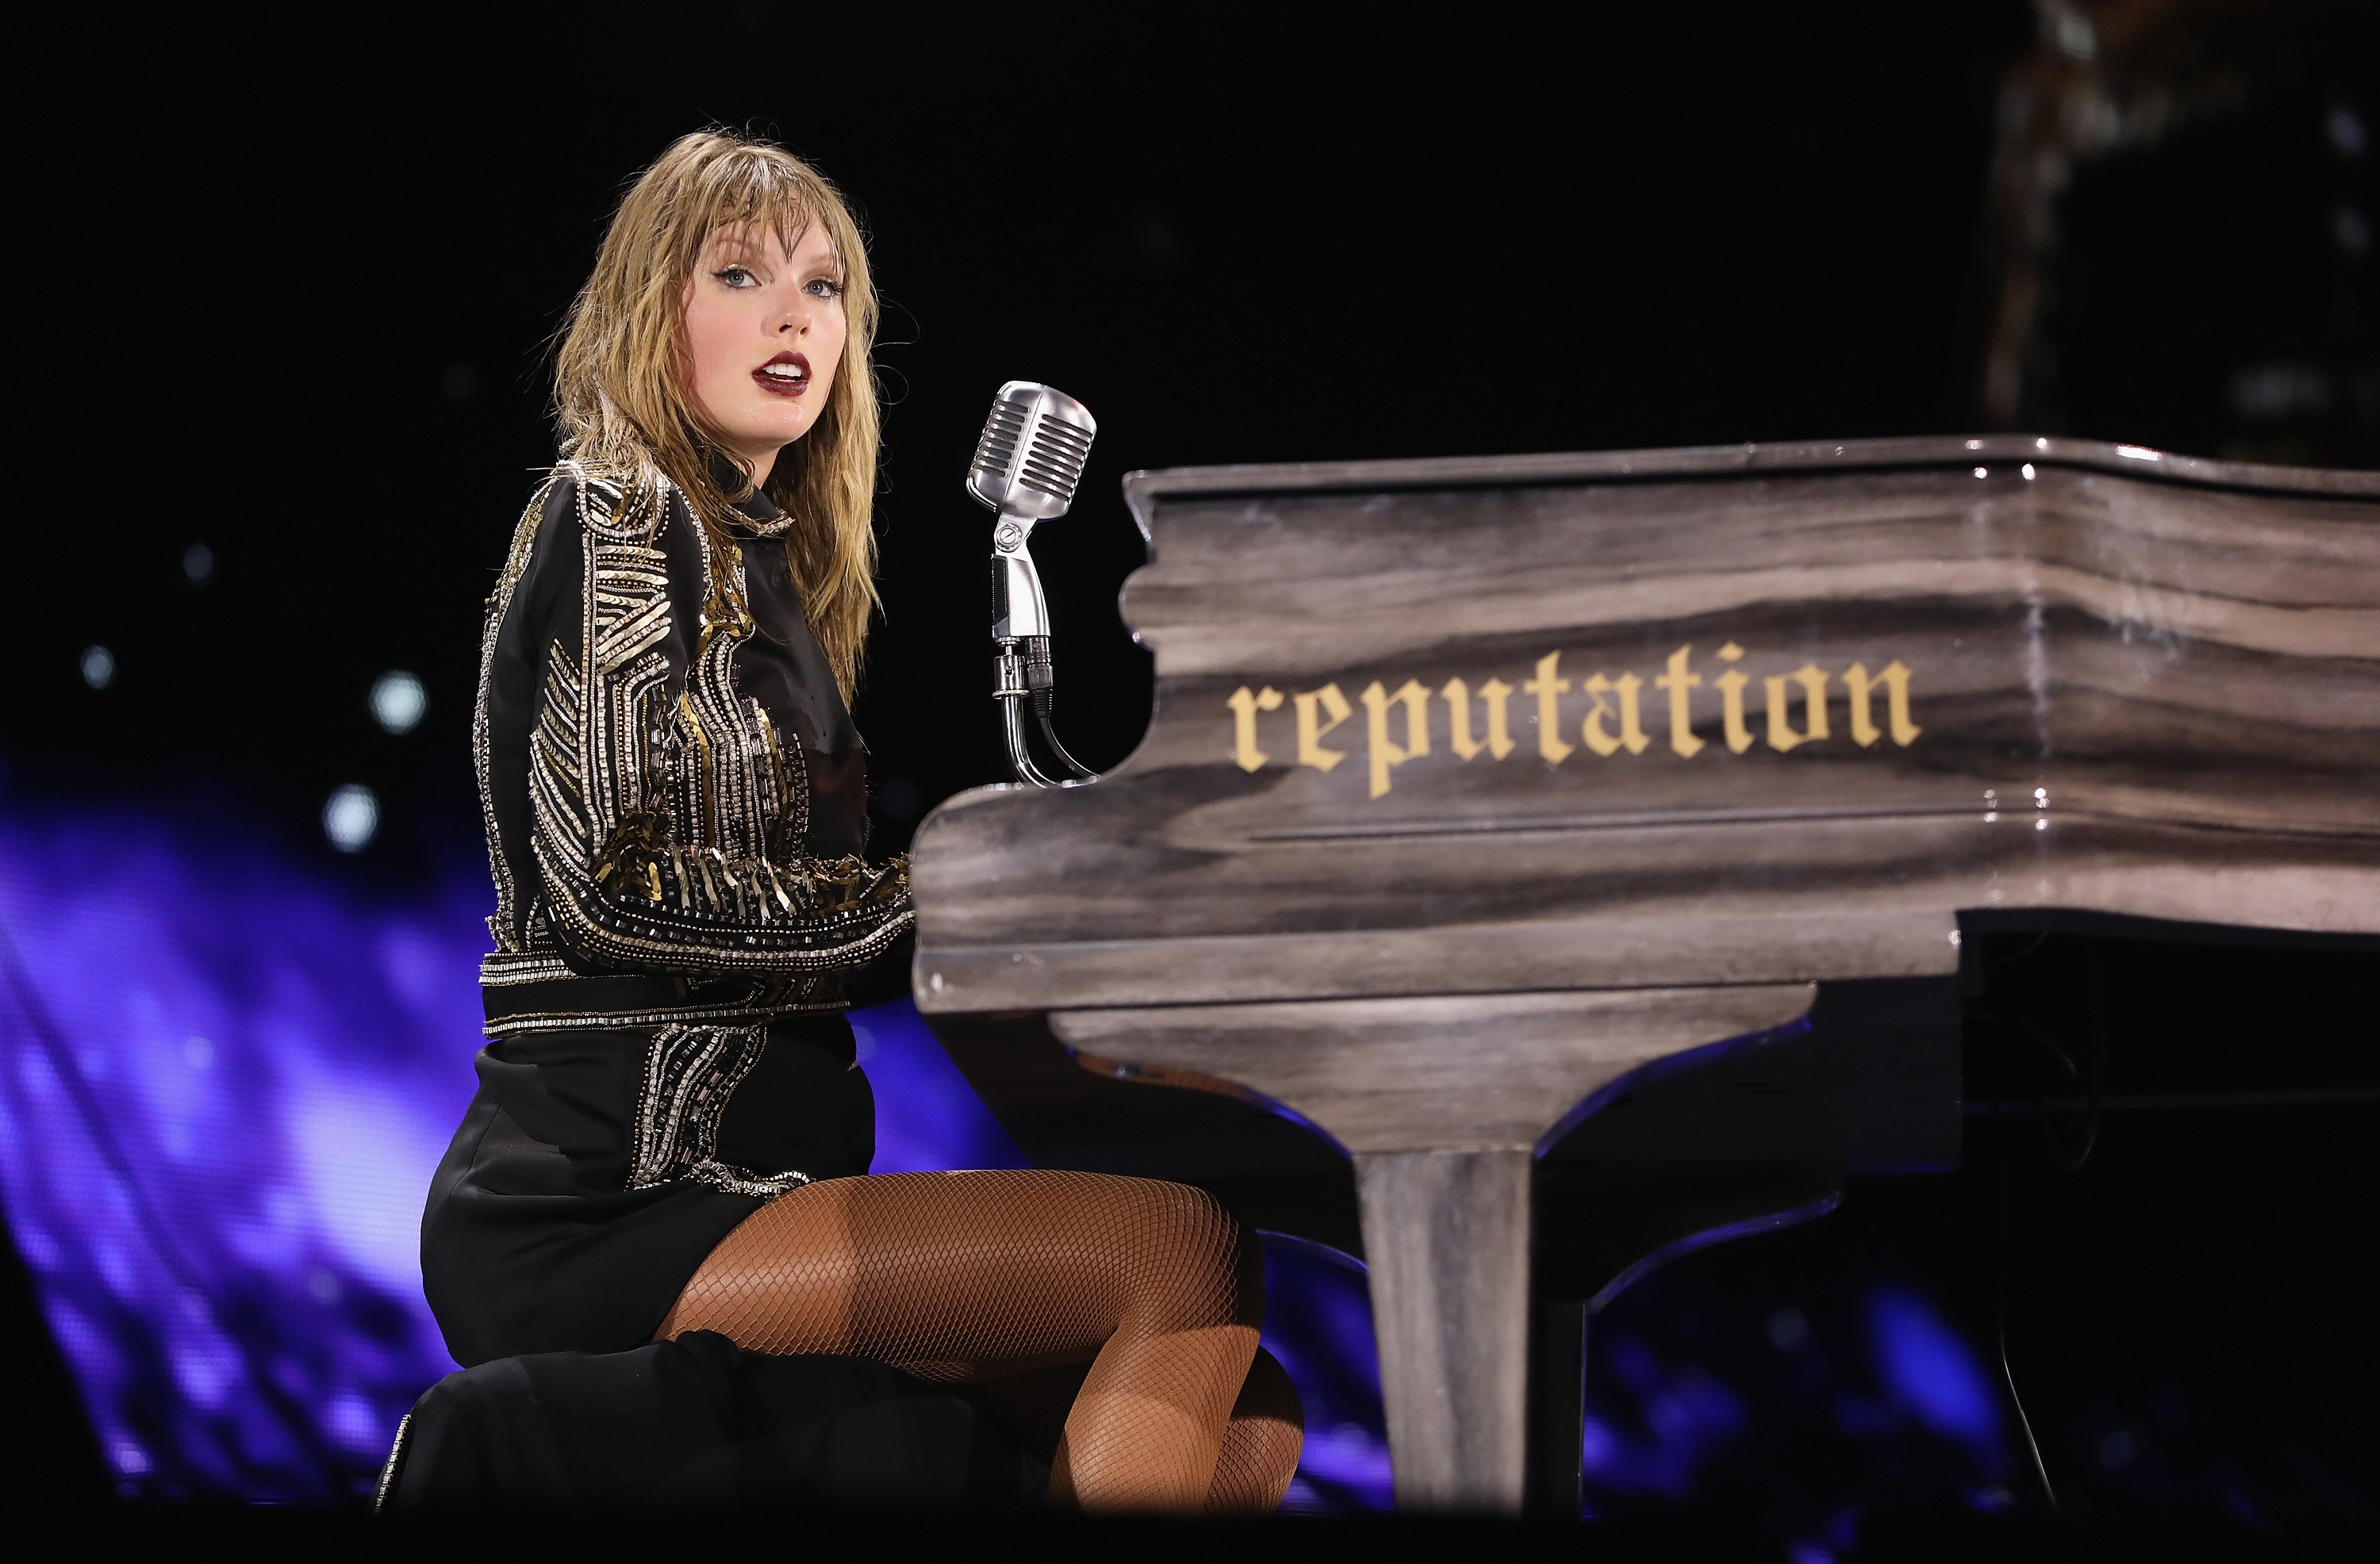 Taylor Swift performs on stage during the Taylor Swift reputation Stadium Tour at Hard Rock Stadium on August 18, 2018, in Miami, Florida. | Source: Getty Images.